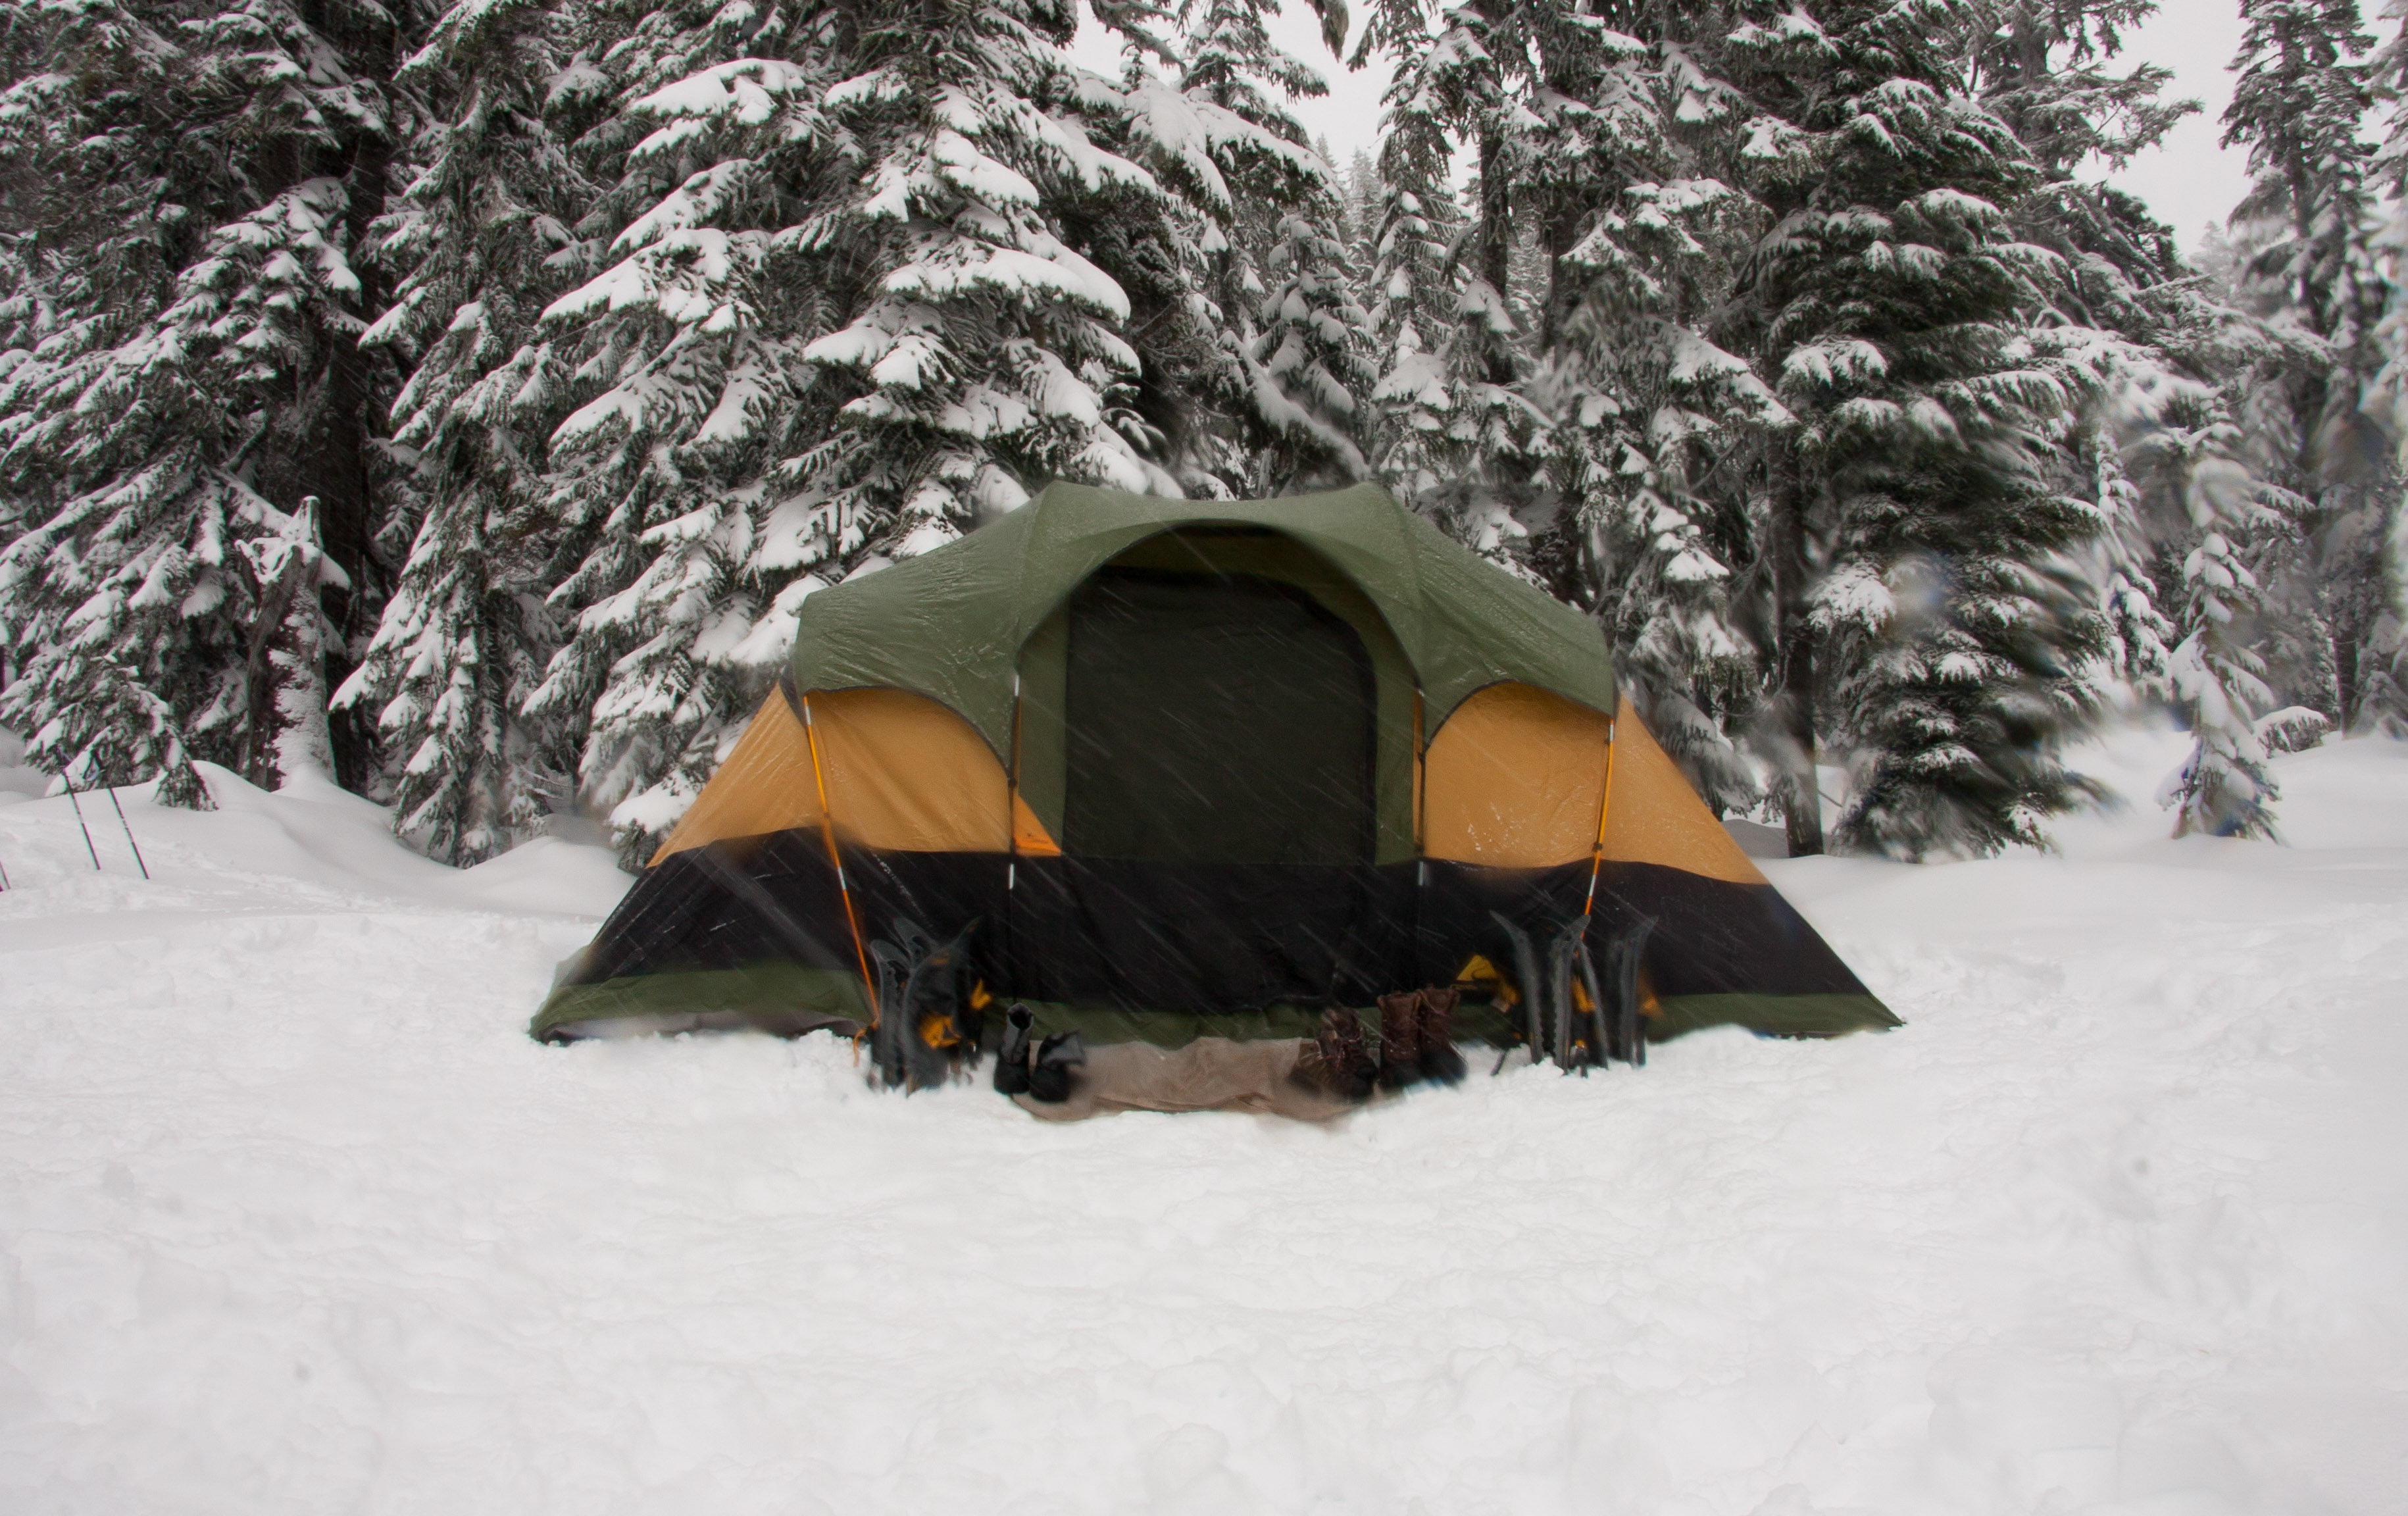 A green and orange tent for camping in the snow at Stevens Pass, Washington